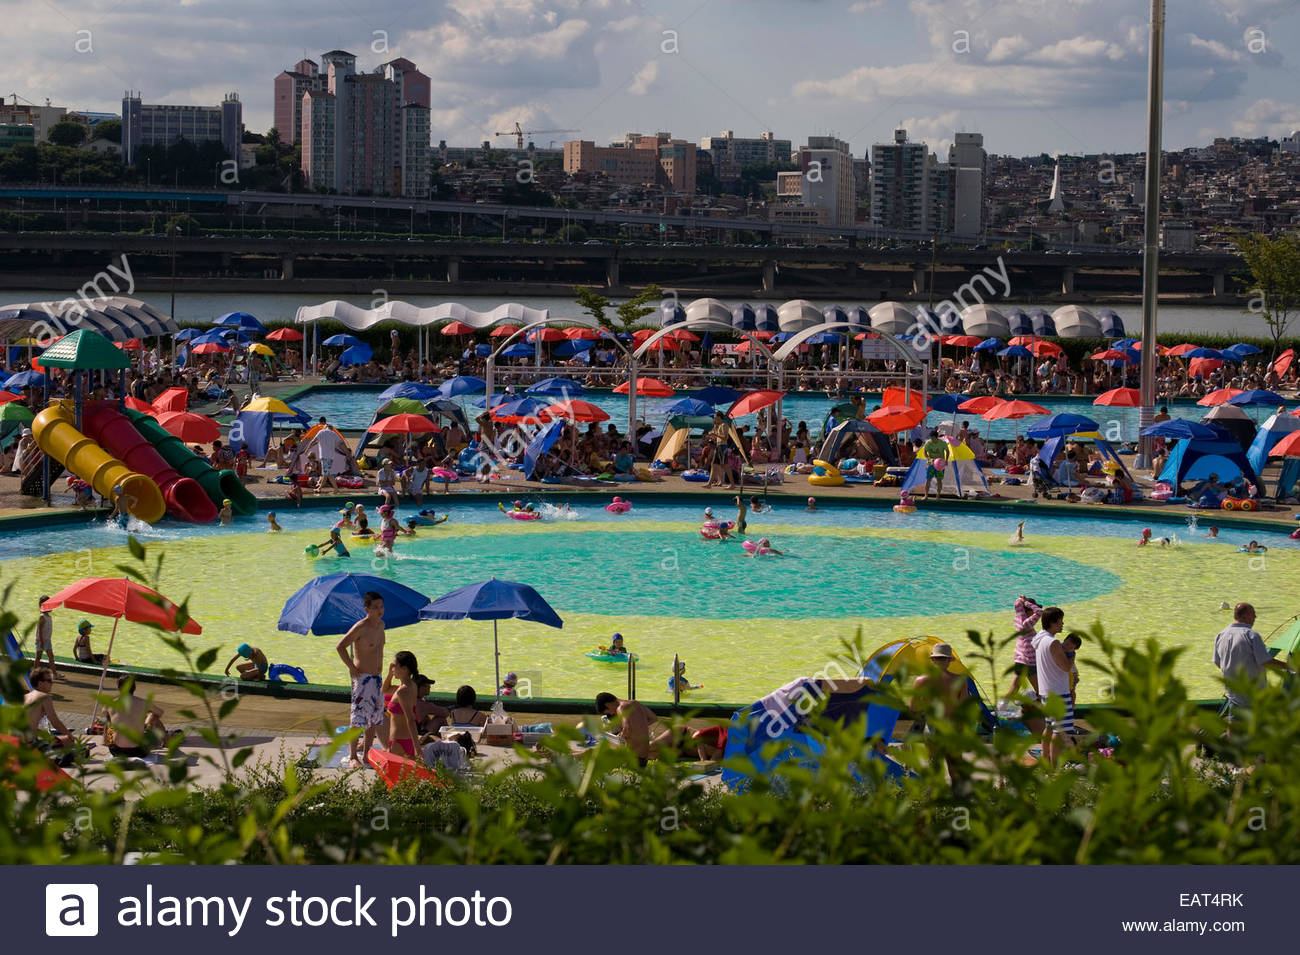 Citizens try to cool off in the Ap-gu-Jung riverside swimming pool. - Stock Image